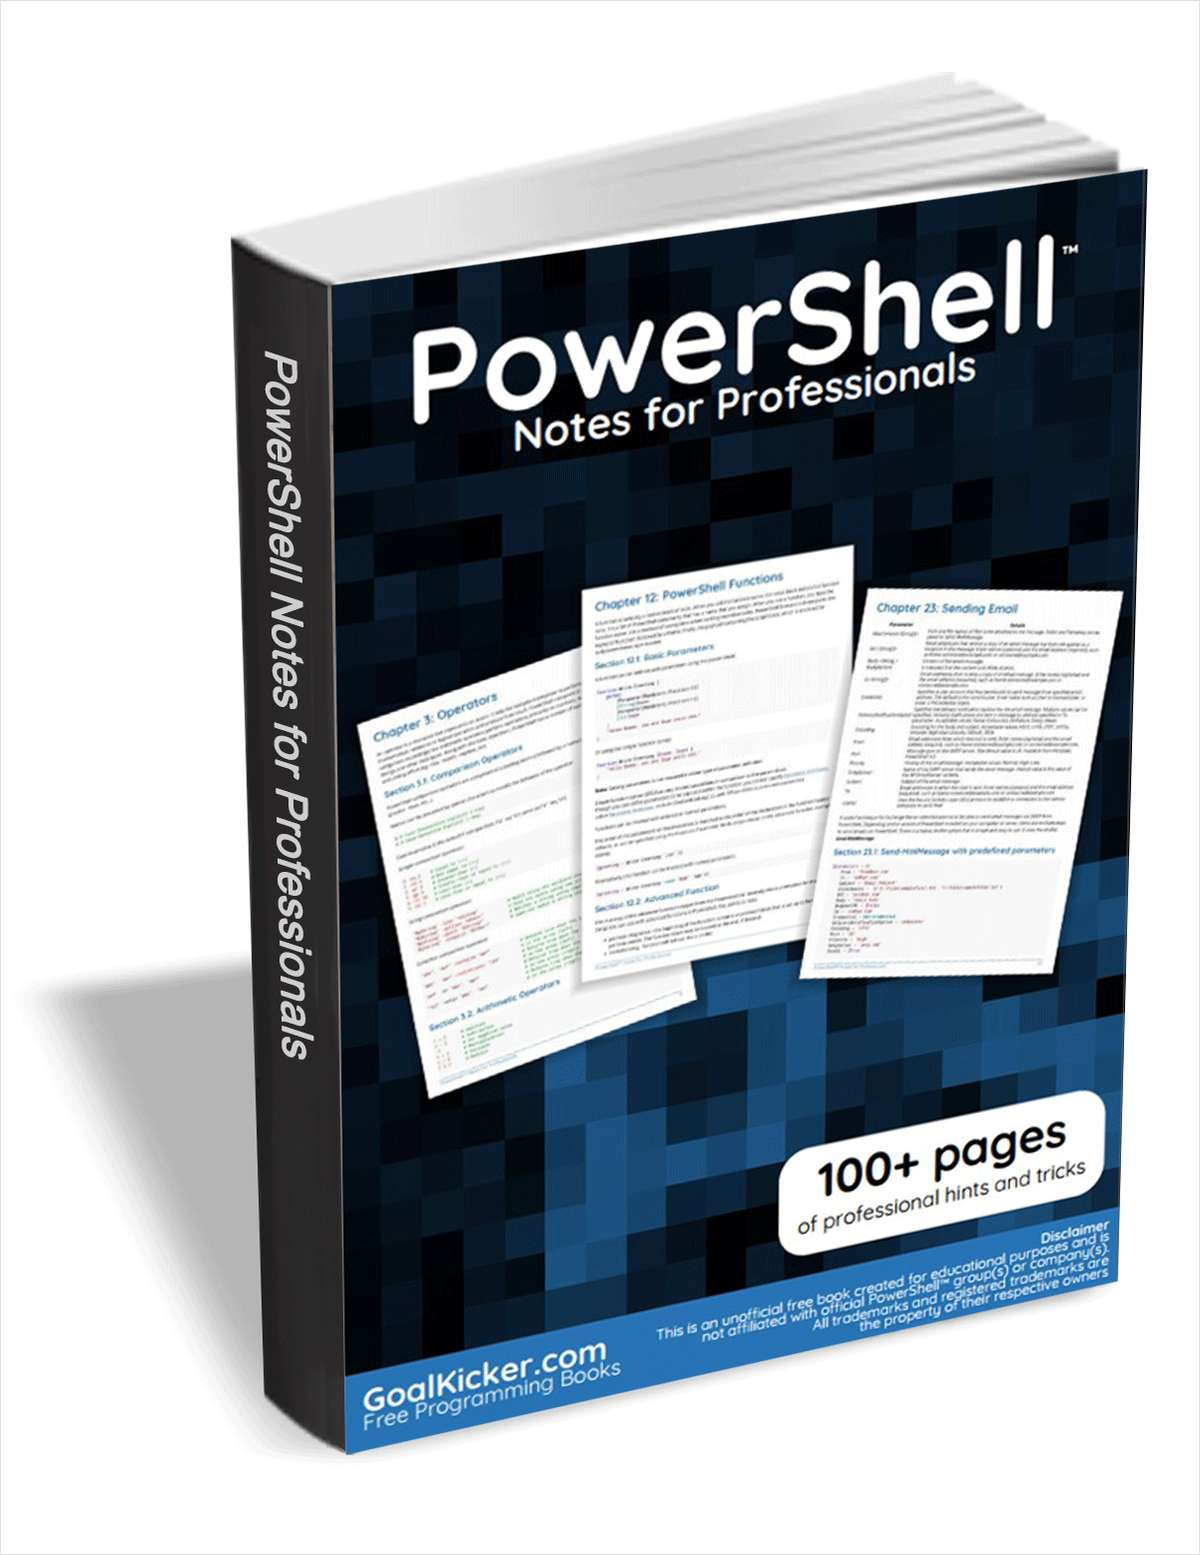 PowerShell Notes for Professionals